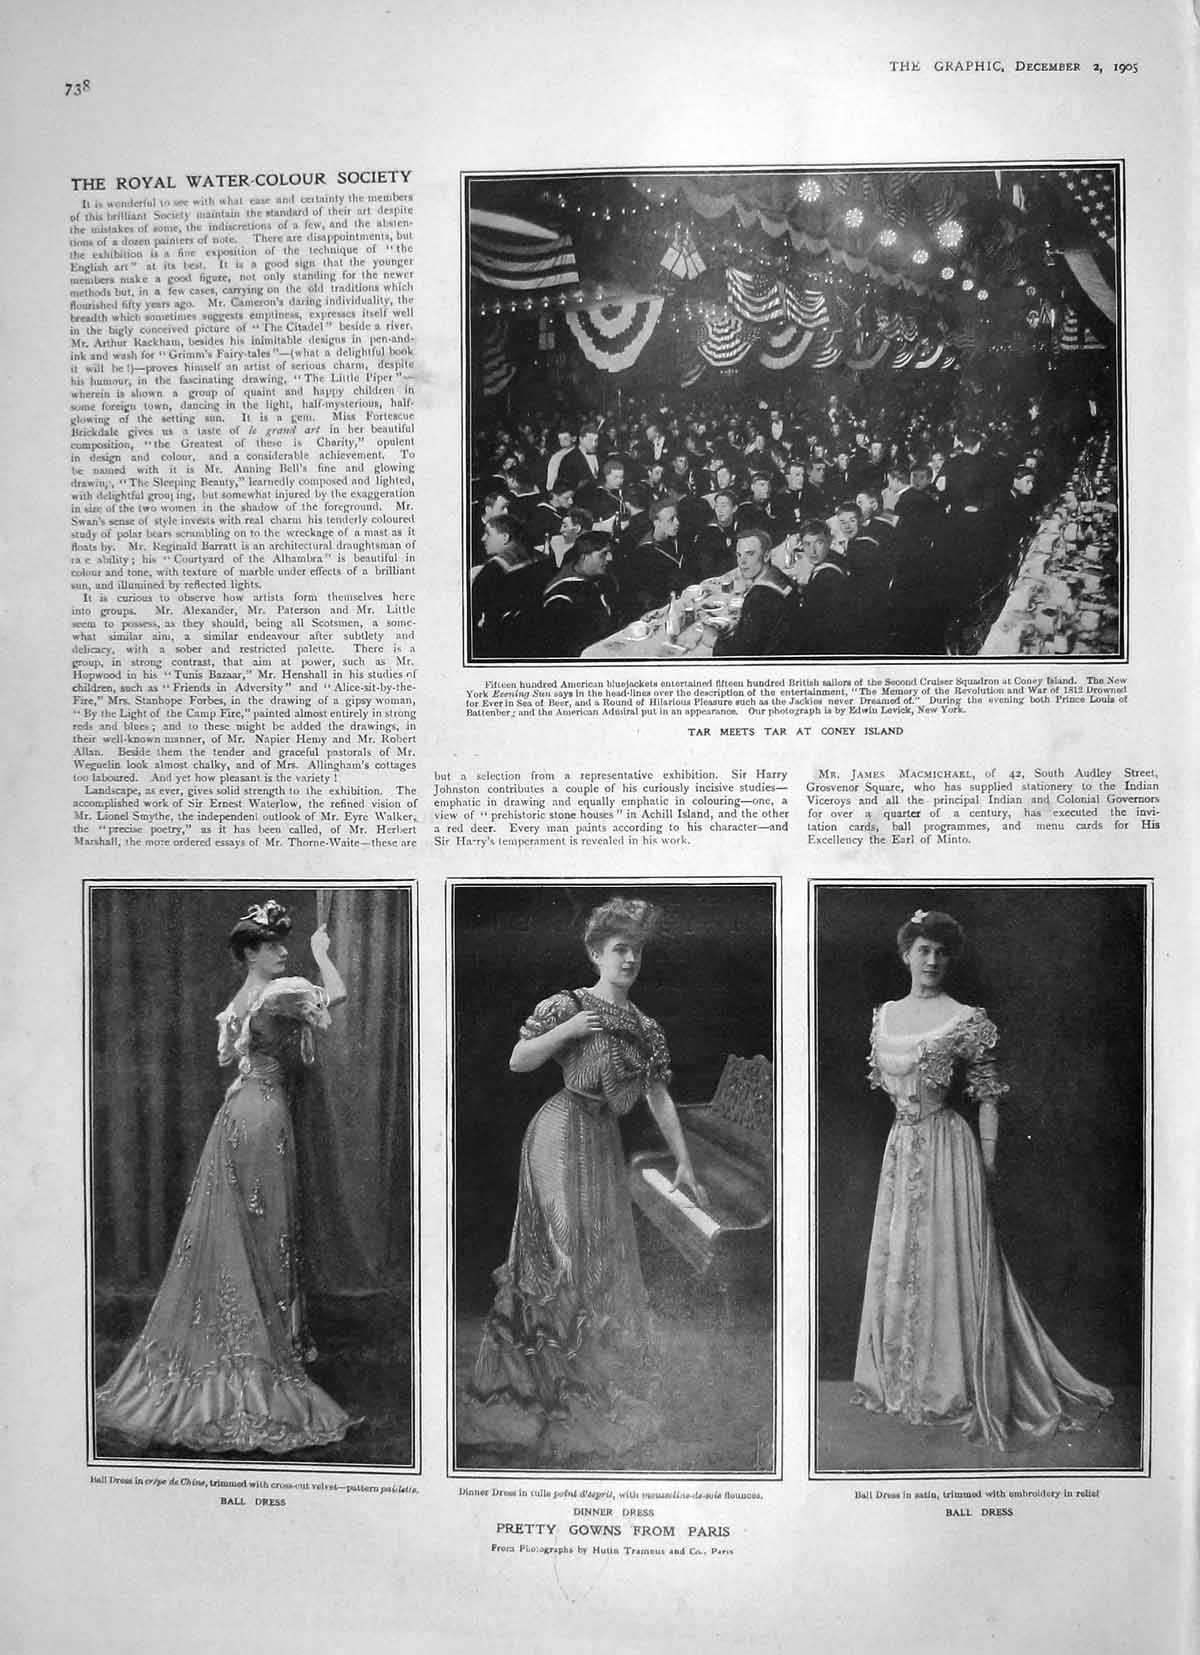 Old-Antique-Print-1905-Paris-Fashion-Gowns-Coney-Island-Huntley-Palmers-20th